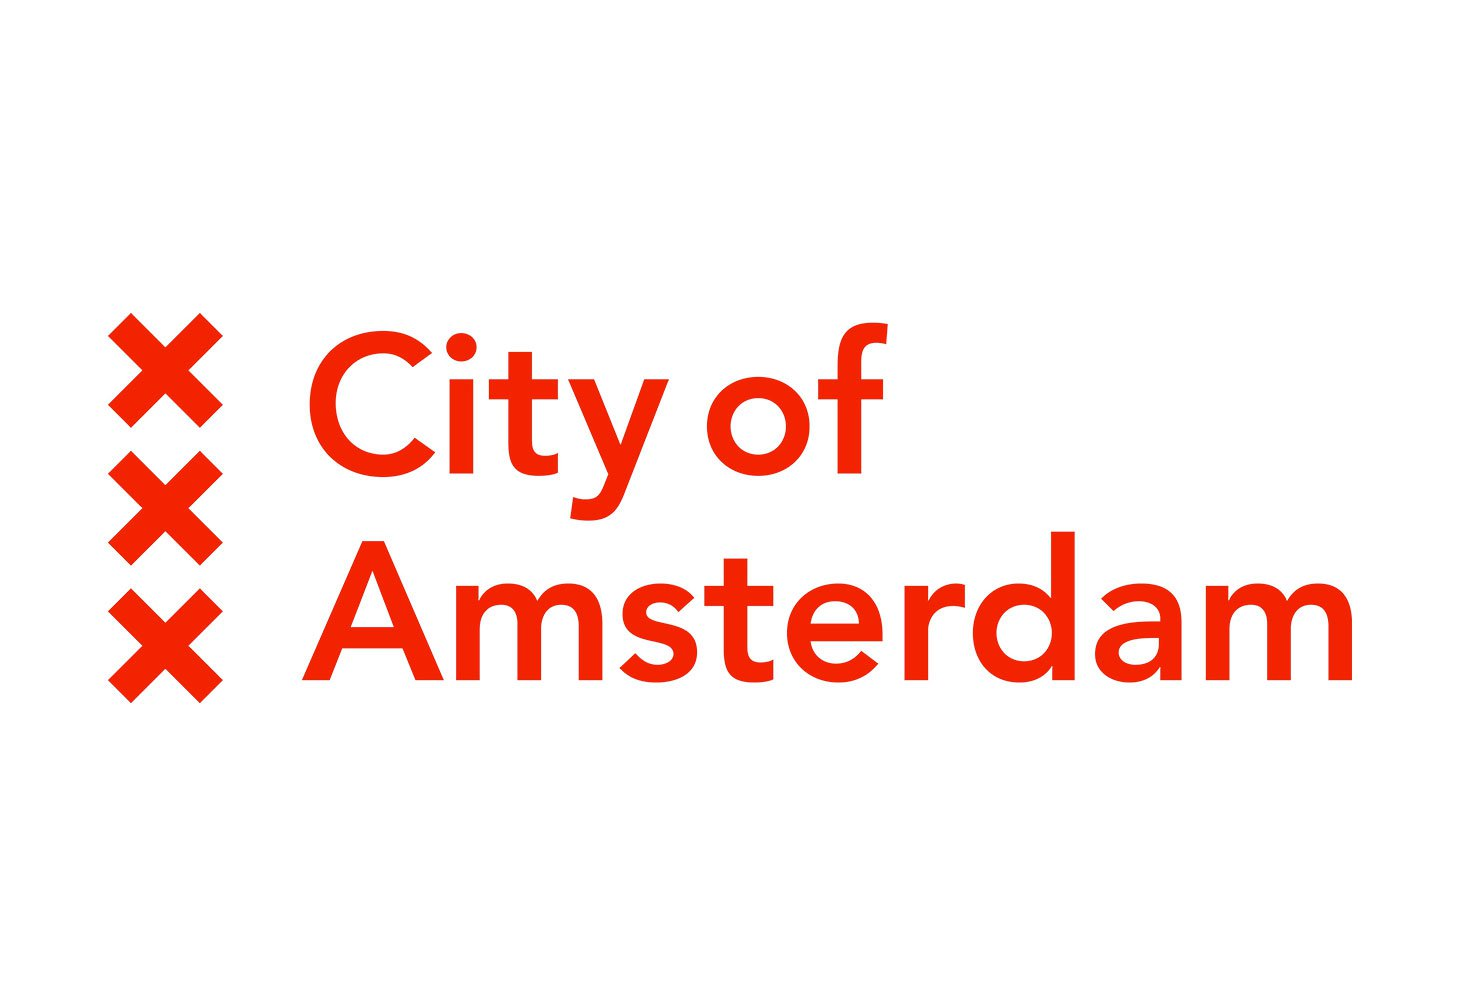 City of Amsterdam logo